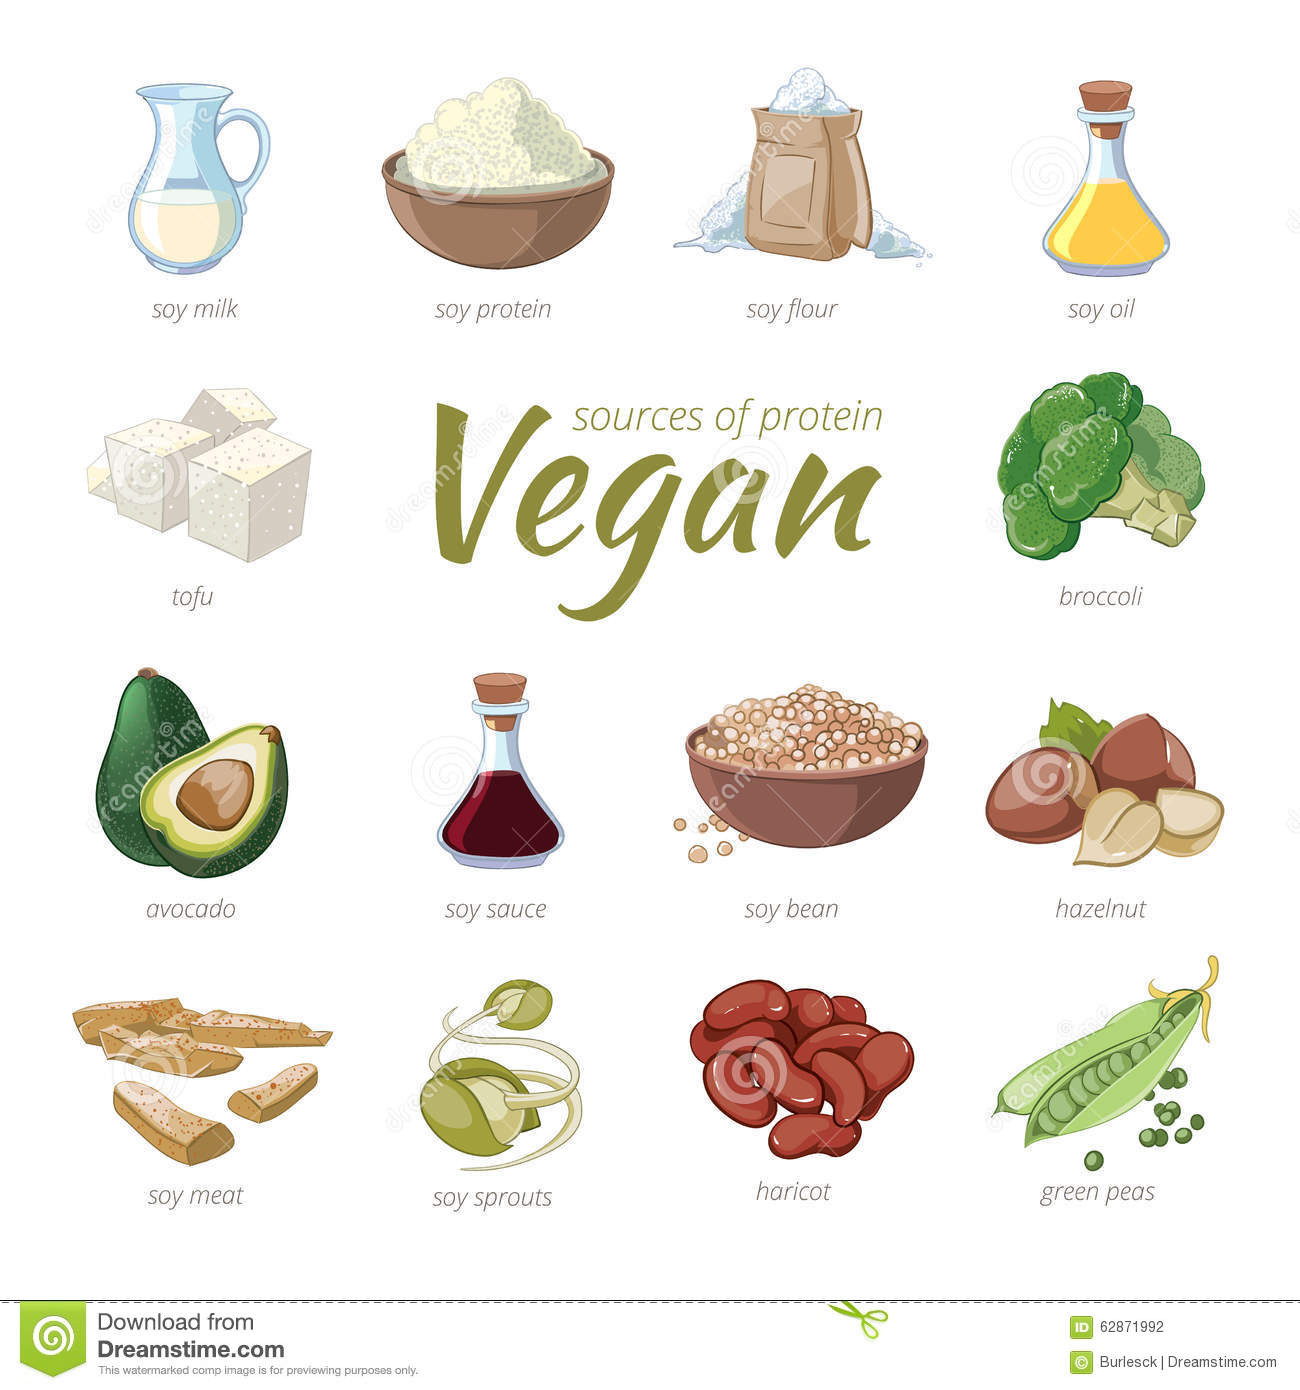 Vegan Protein Sources Plant Based  Vegan Sources Protein Plant Based Protein Stock Vector